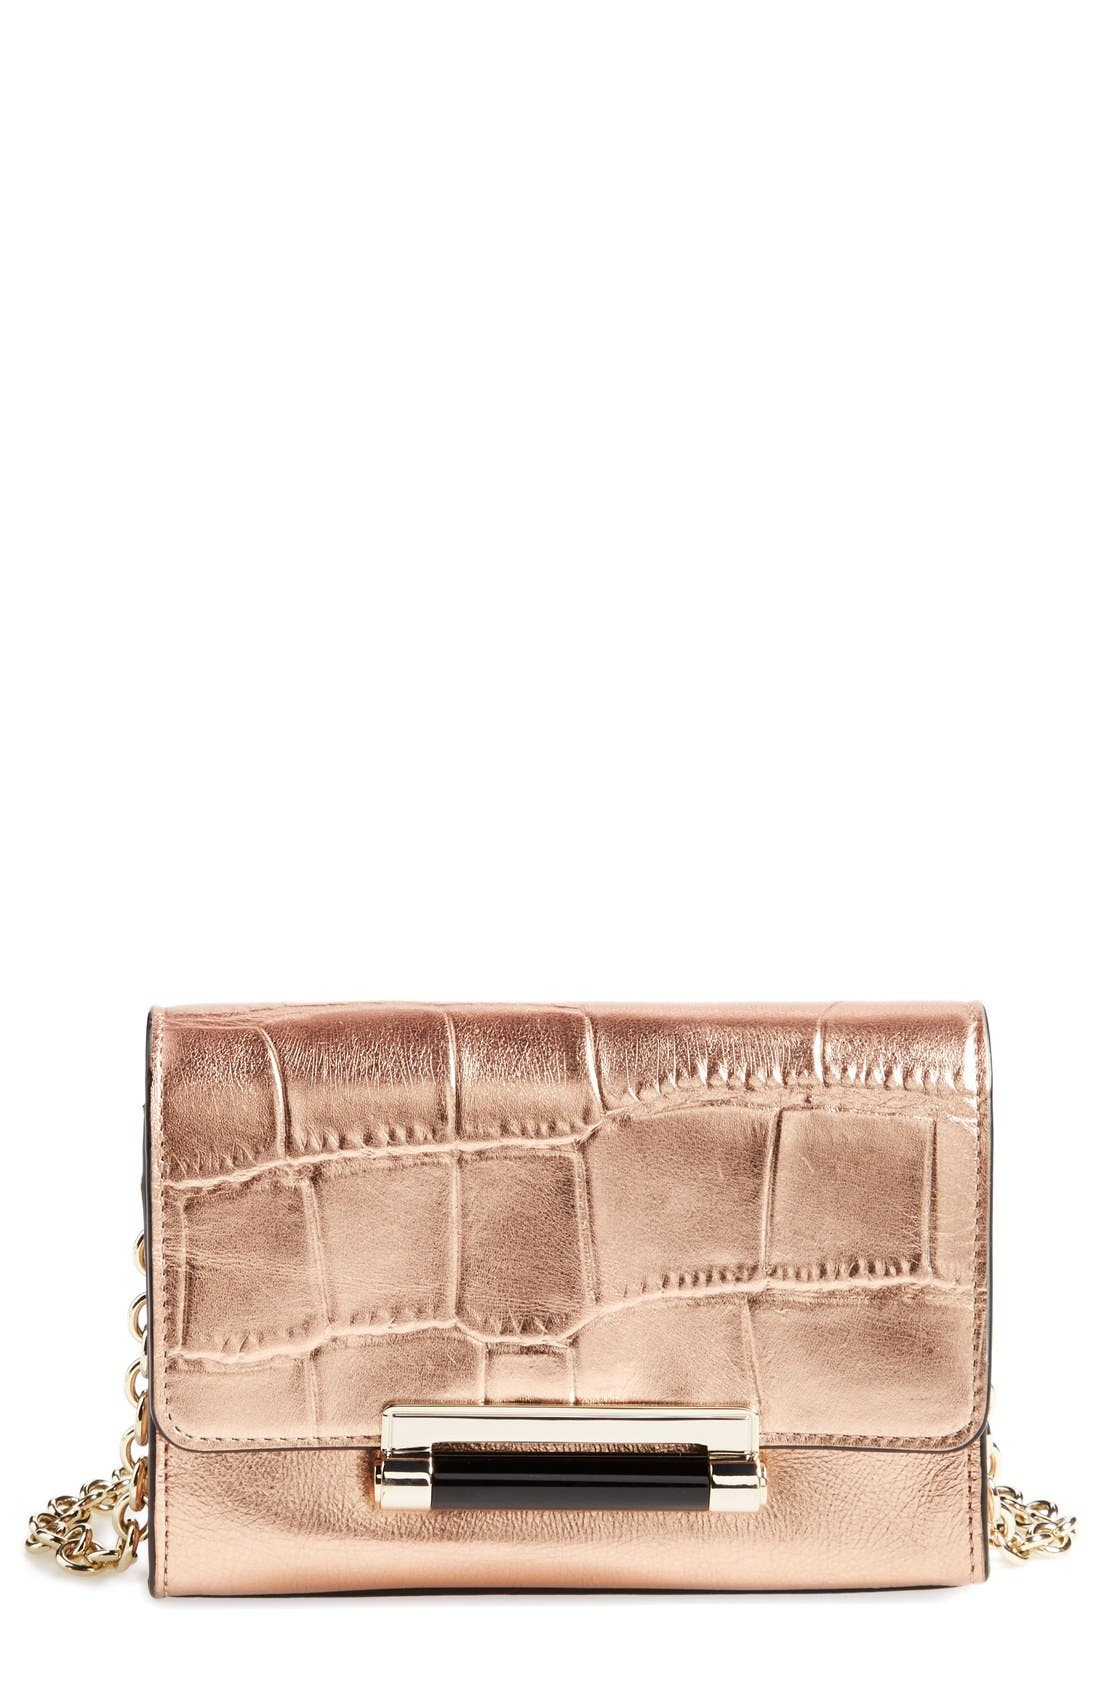 'Micro Mini 440' Croc Embossed Metallic Leather Crossbody Bag,                         Main,                         color, 711